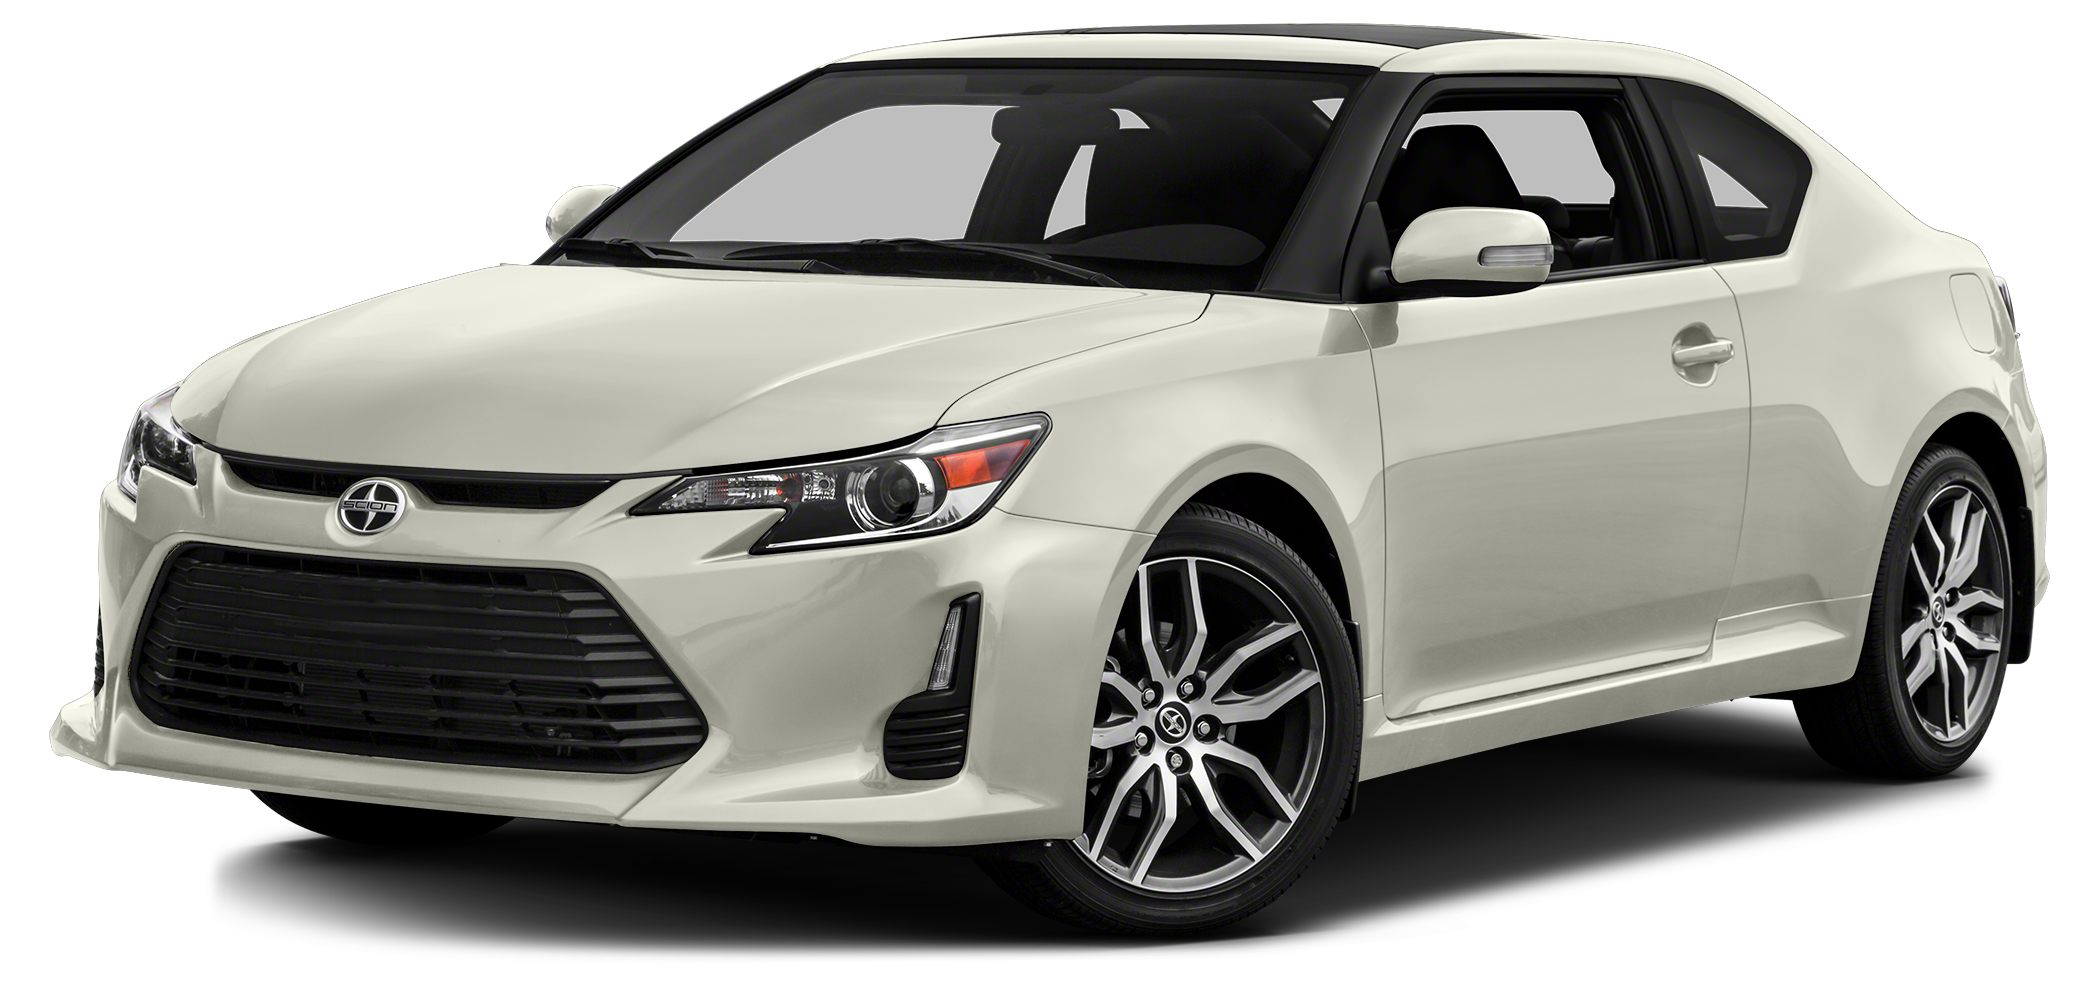 2016 Scion tC Base Looking for a new car at an affordable price Introducing the 2016 Scion tC It